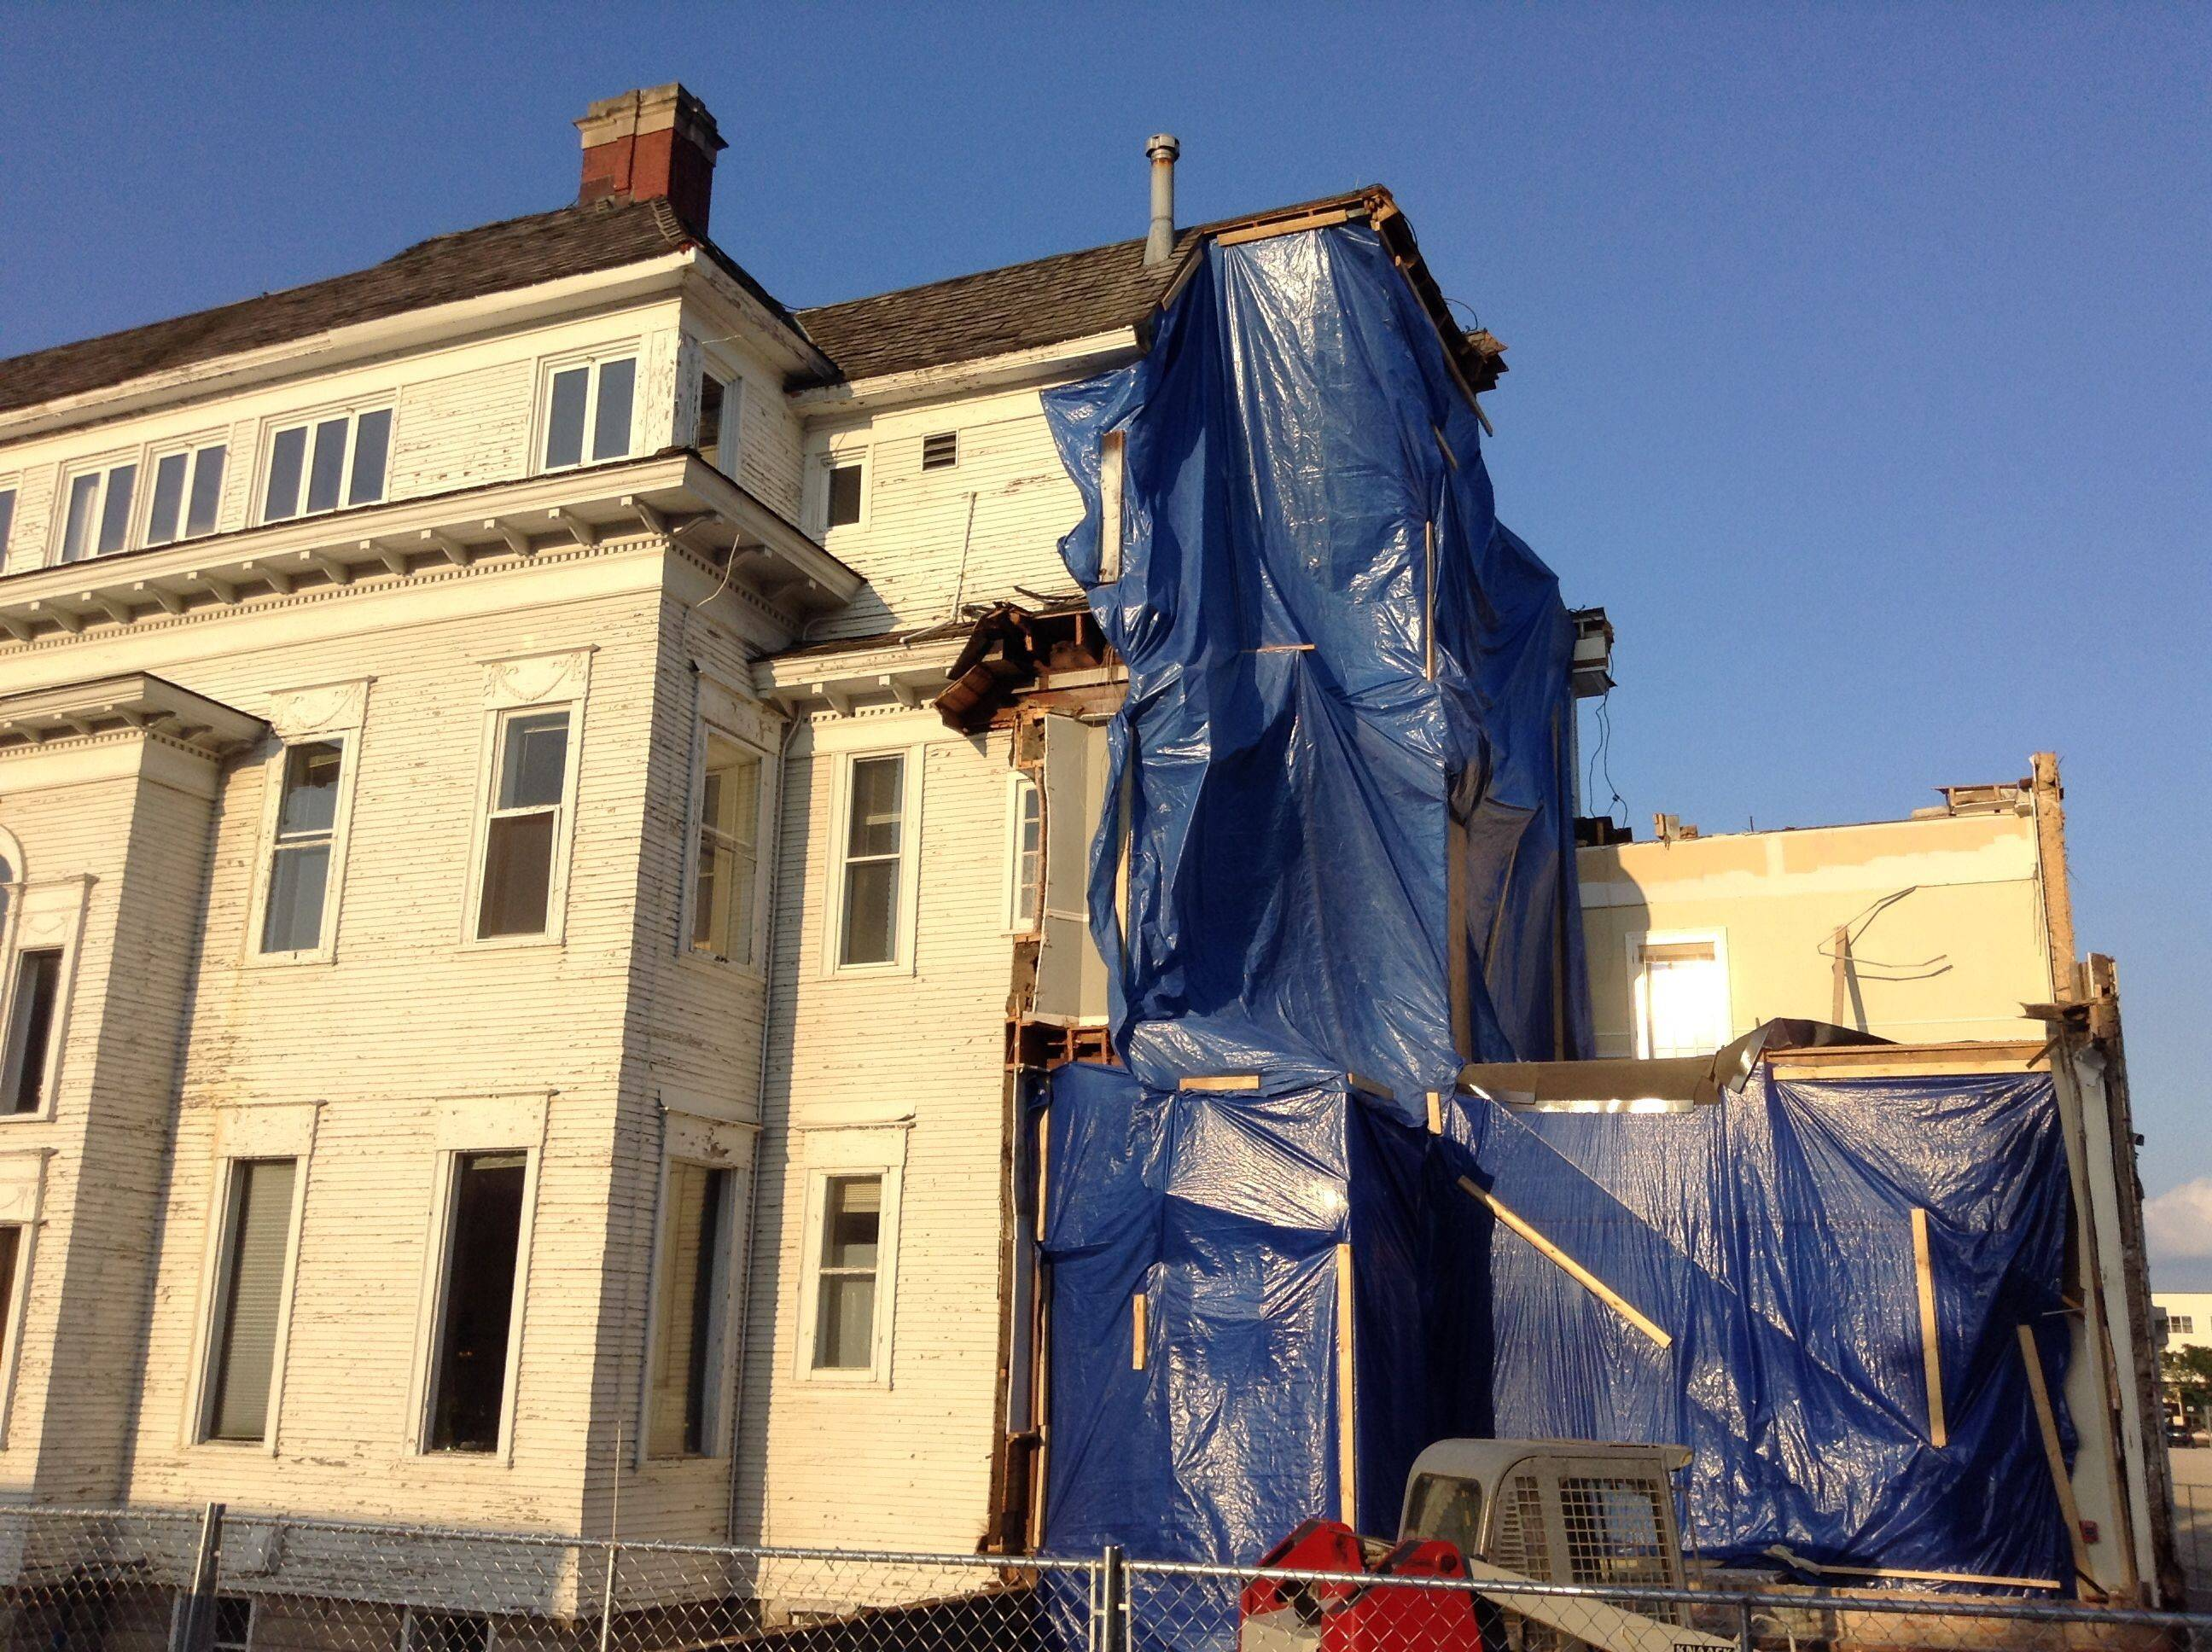 Barrington White House renovation well underway